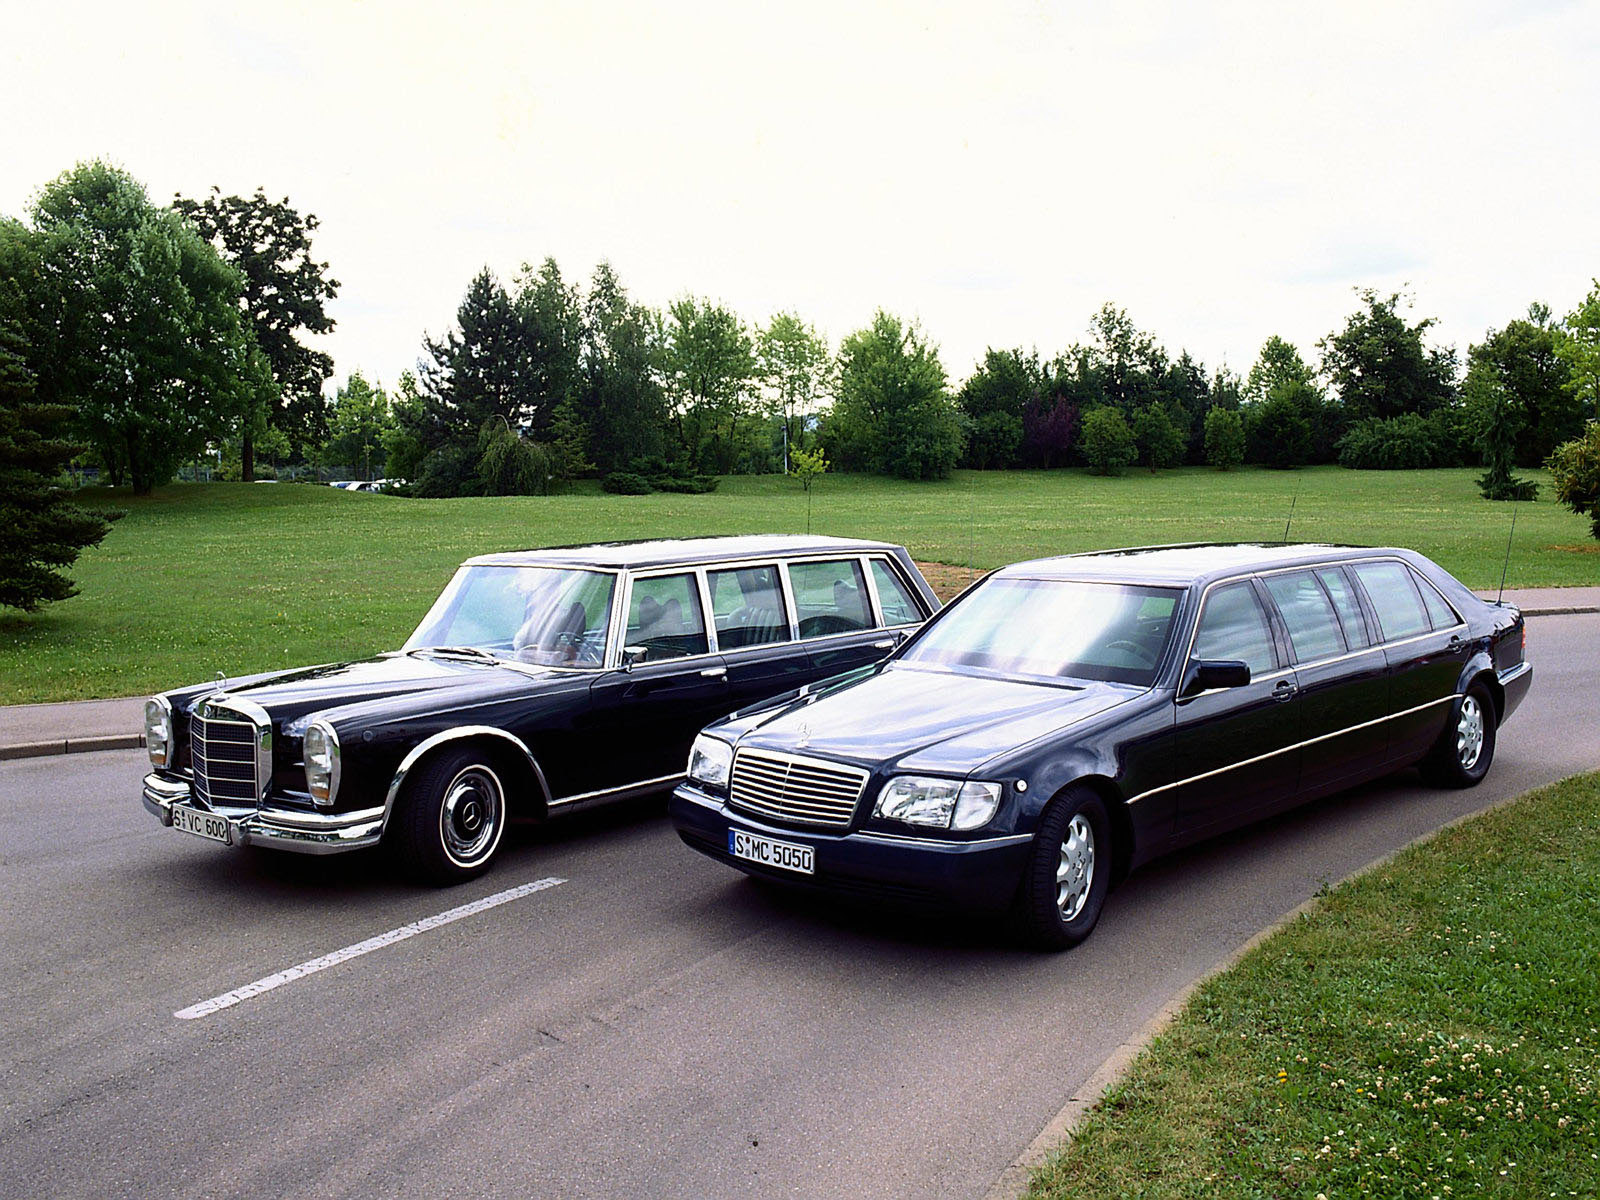 Benz s class w140 600sel or s600 m120 394 hp w140 information - Mercedes Benz S Class W140 Picture 39432 Mercedes Benz Photo